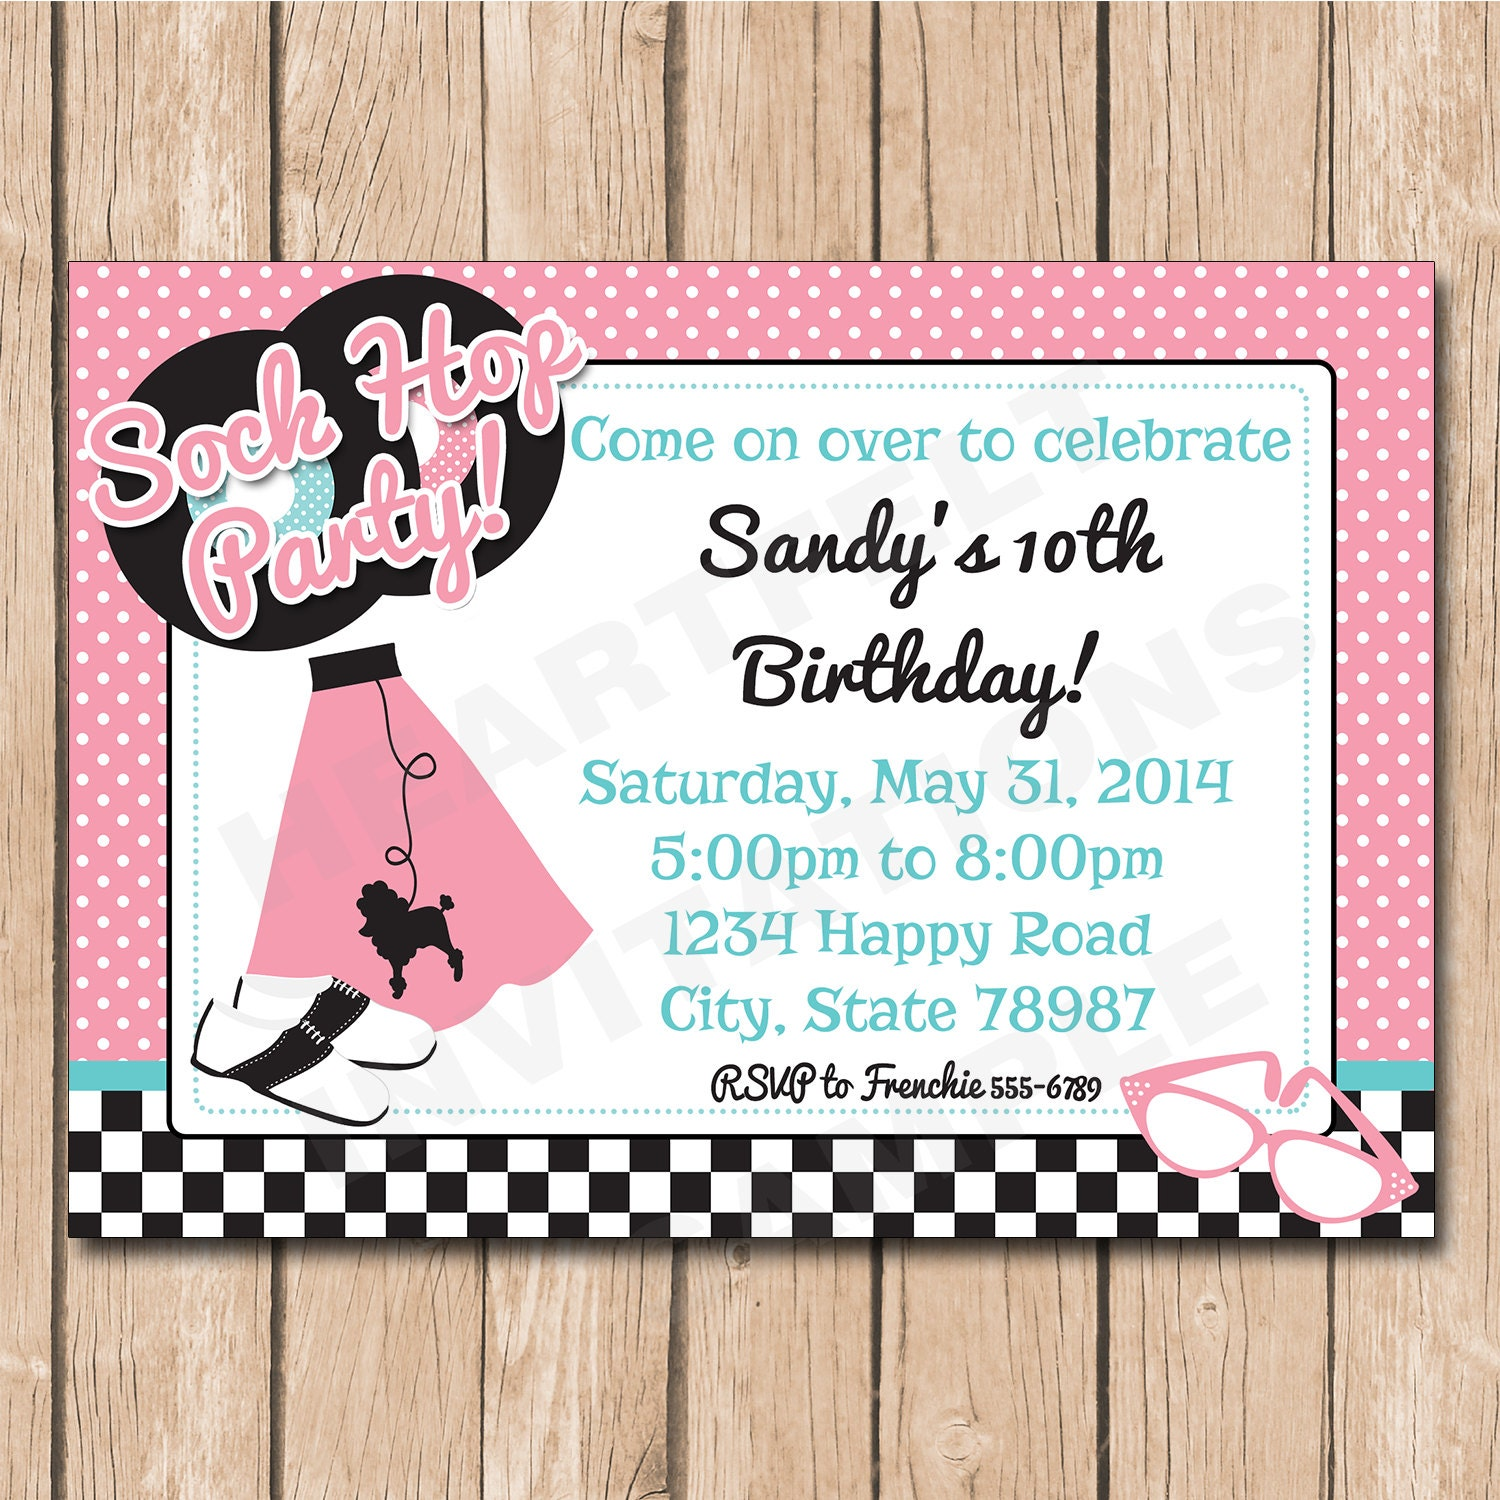 Sock Hop Birthday Invitation 50\'s Retro Poodle Skirt